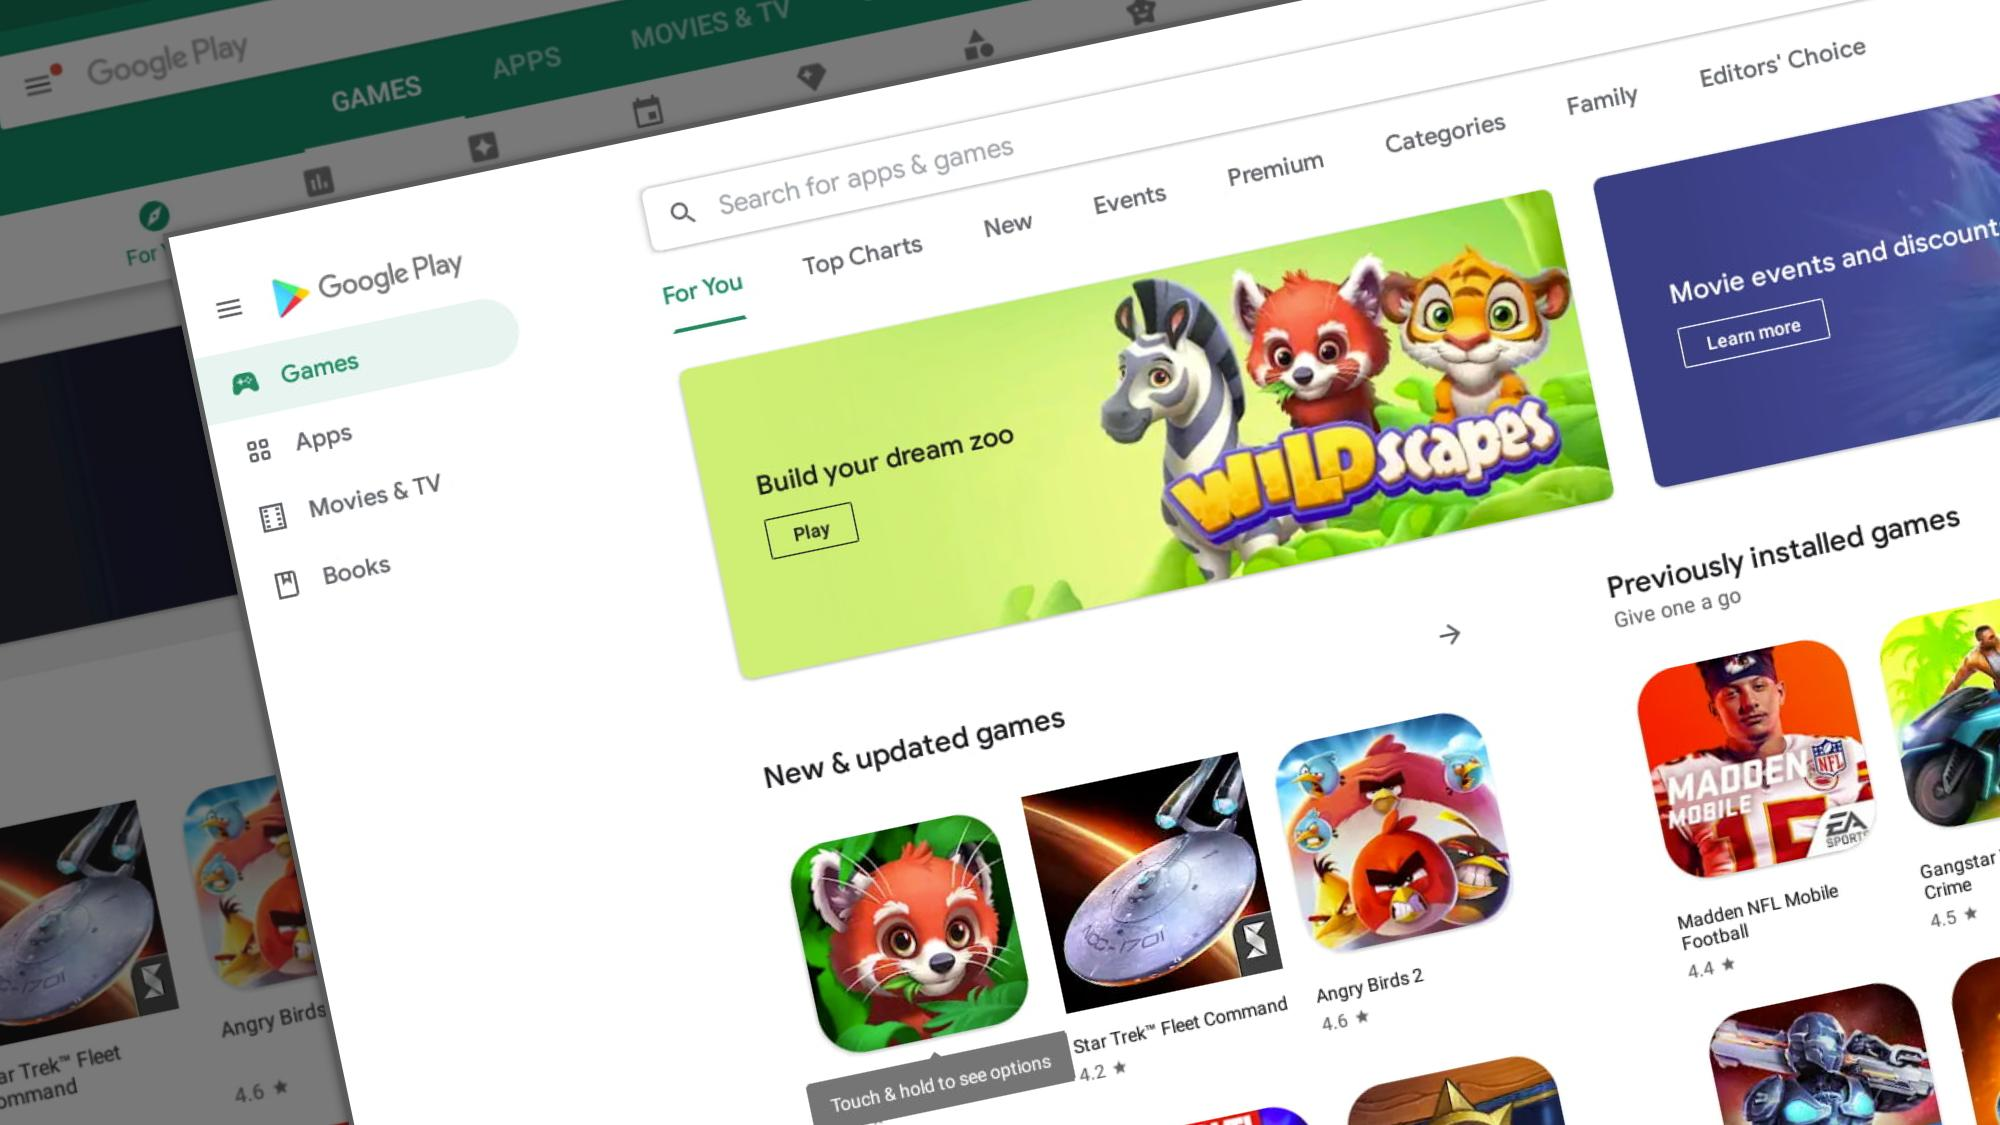 How to request a refund on the Google Play Store